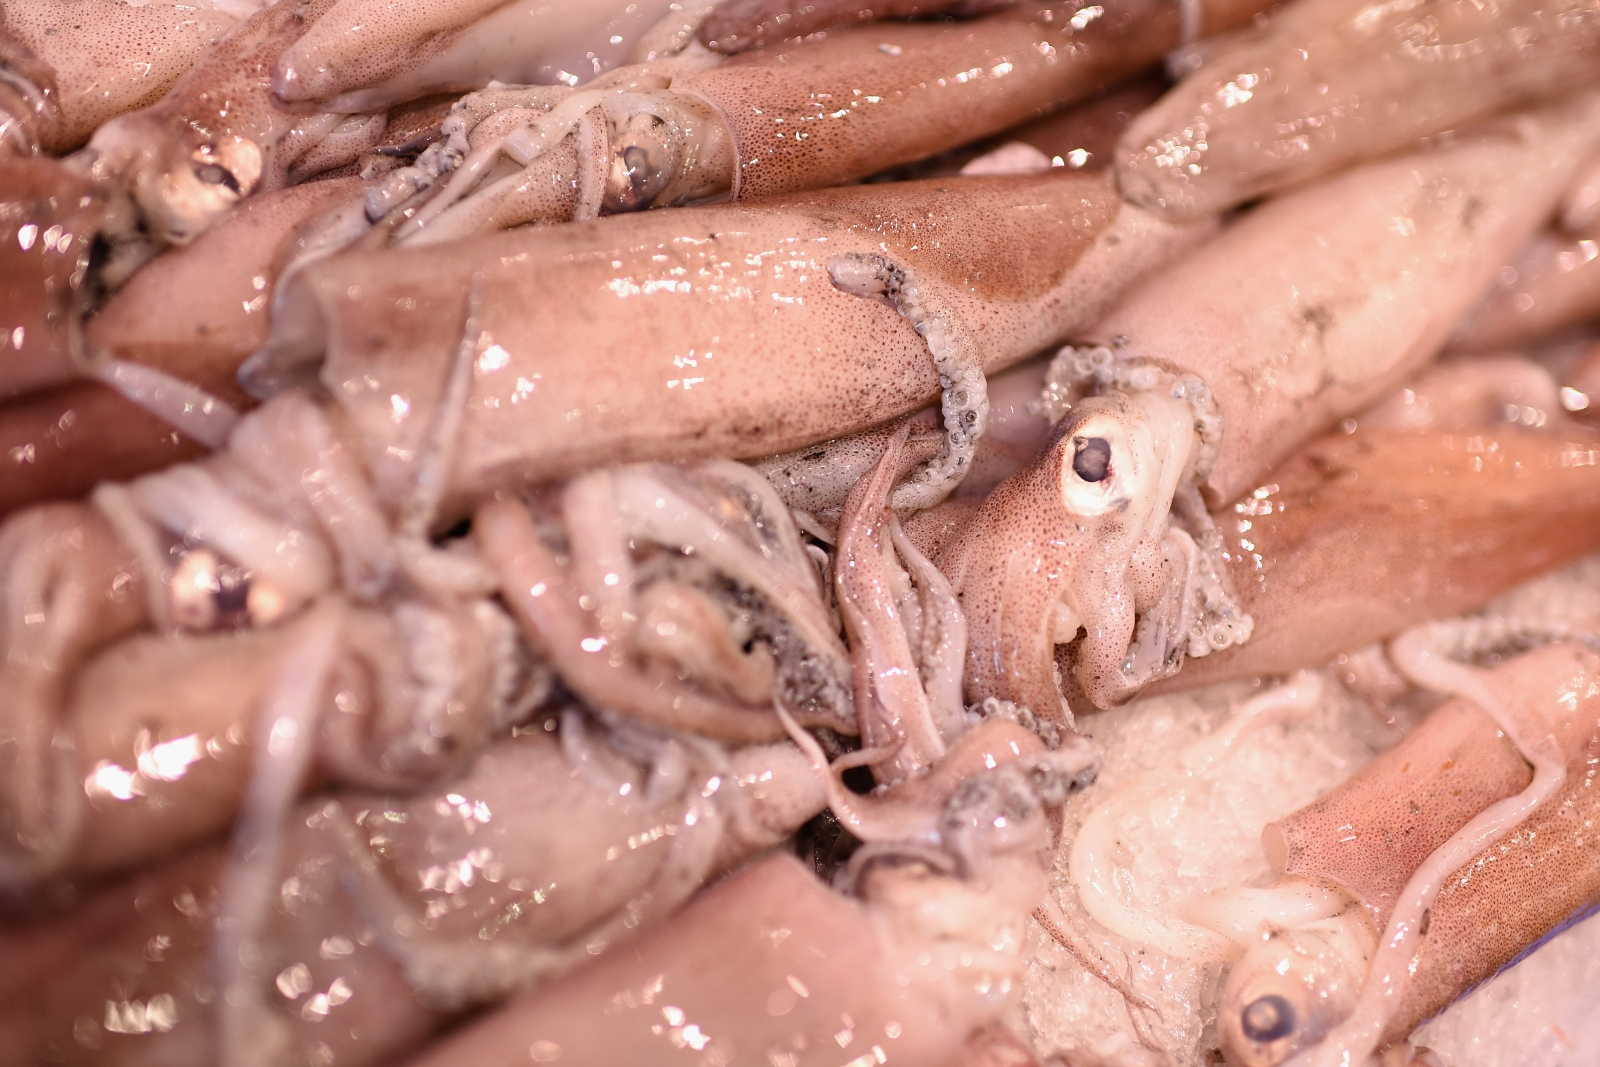 Squid at a fish market